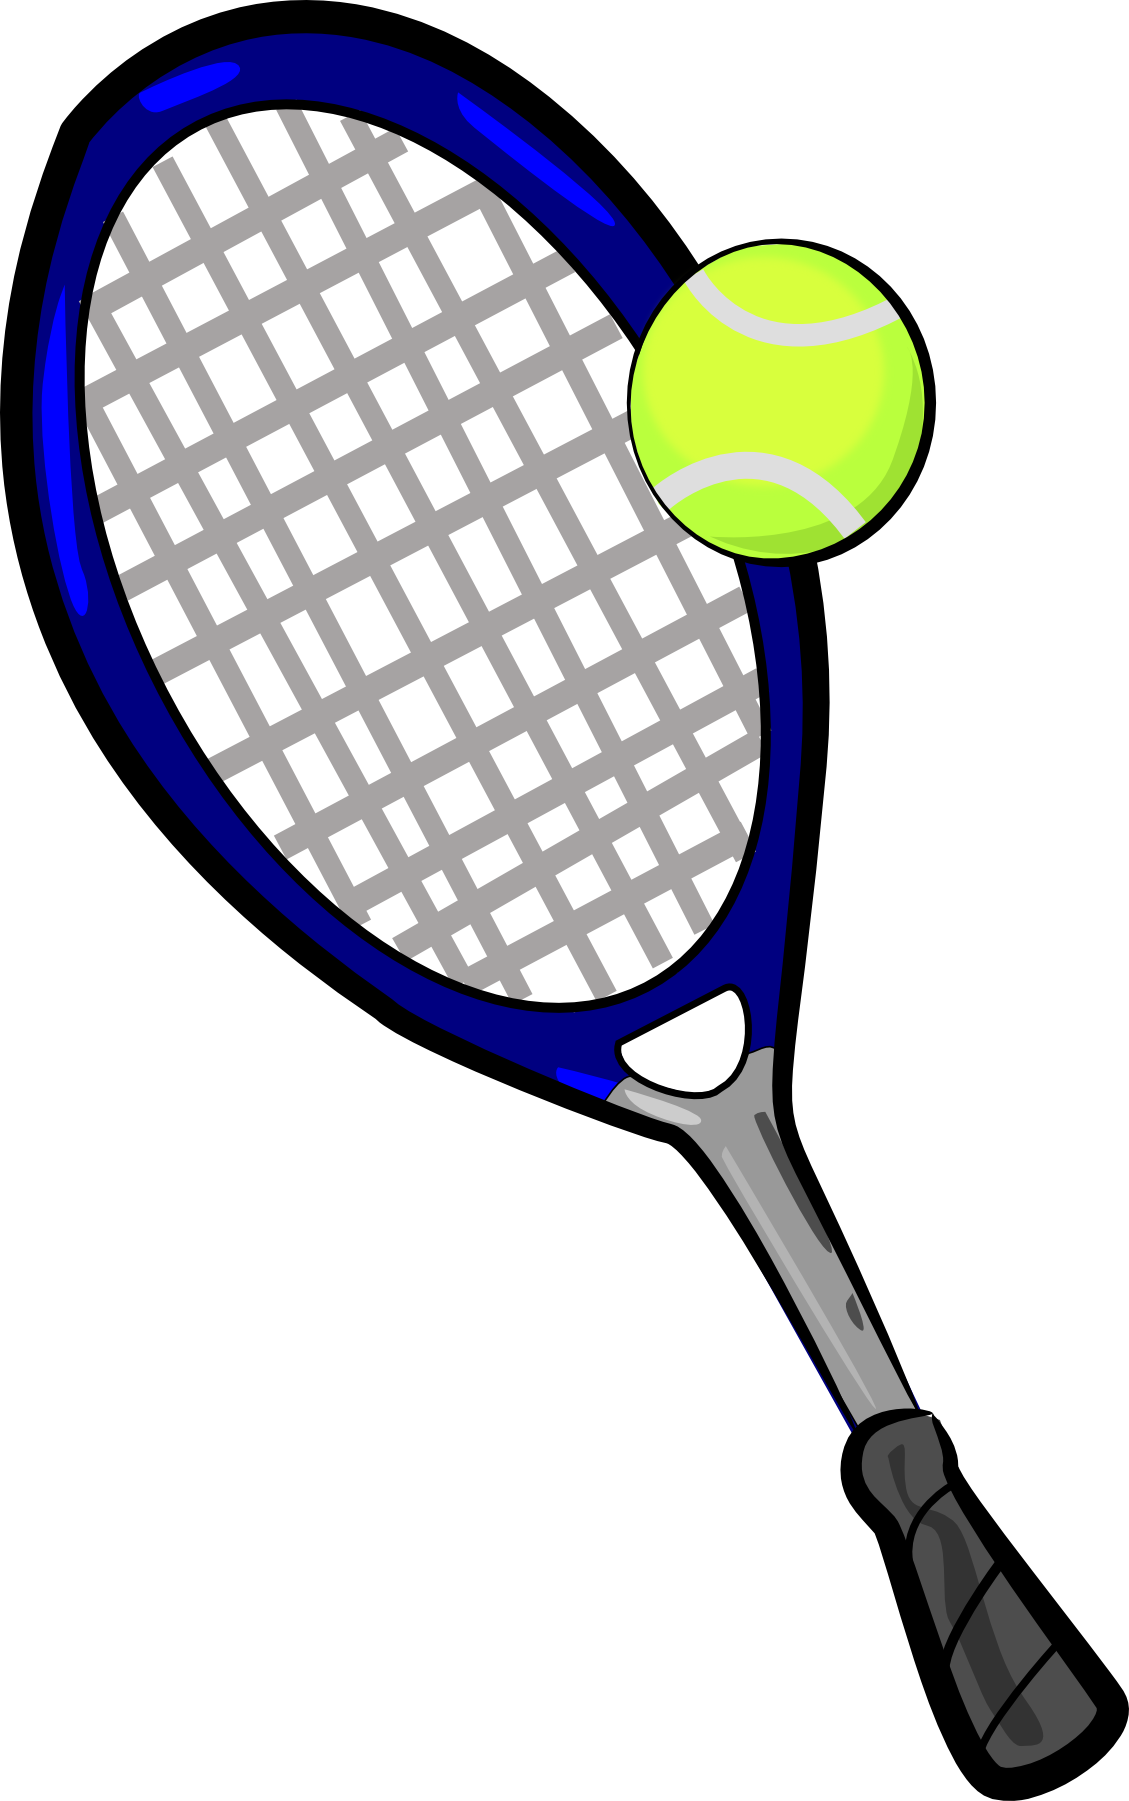 Tennis Ball And Racket Clip Art.